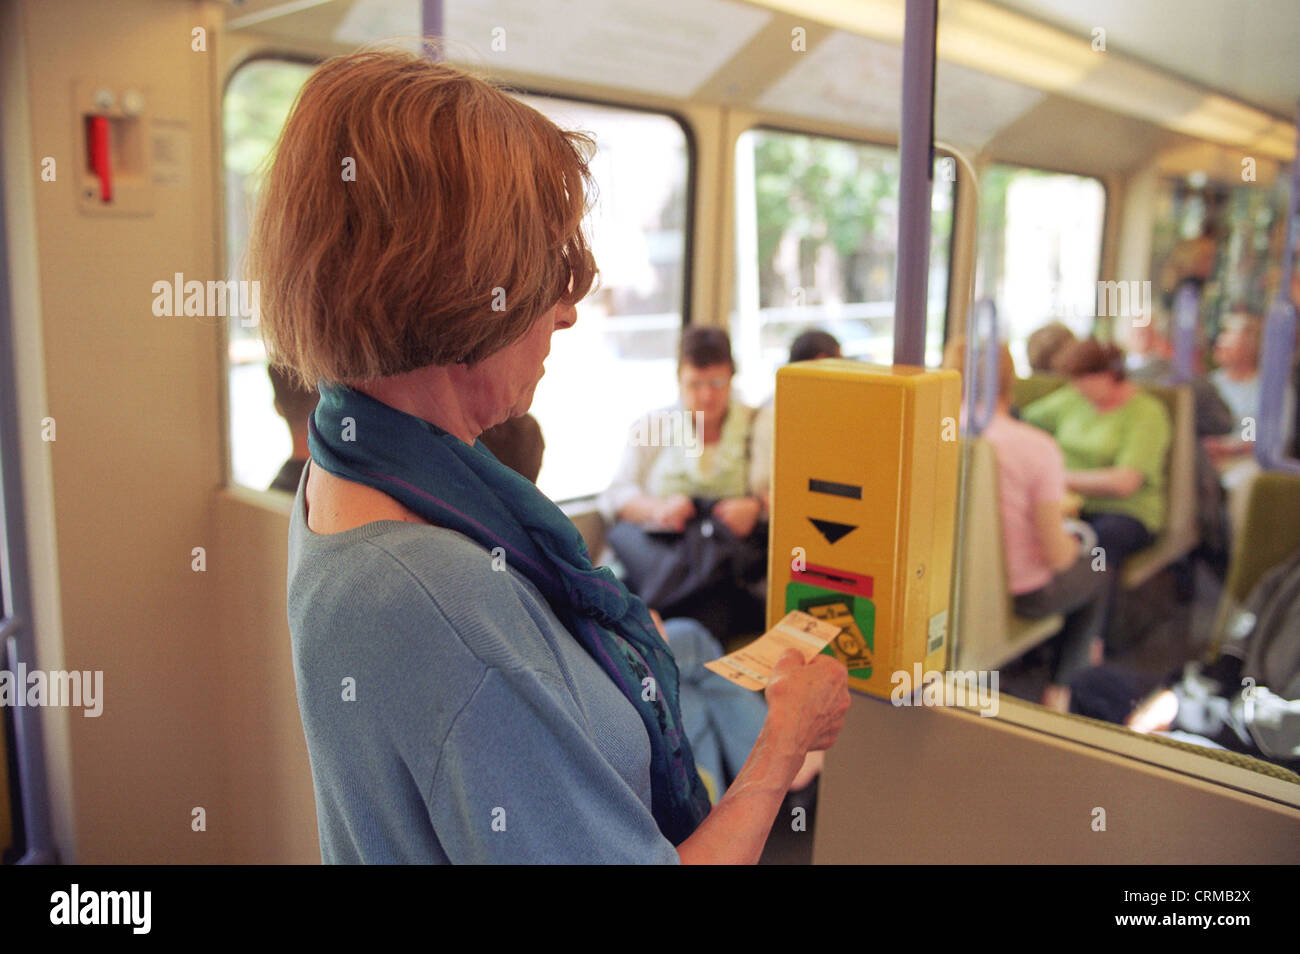 A woman tied a ticket - Stock Image